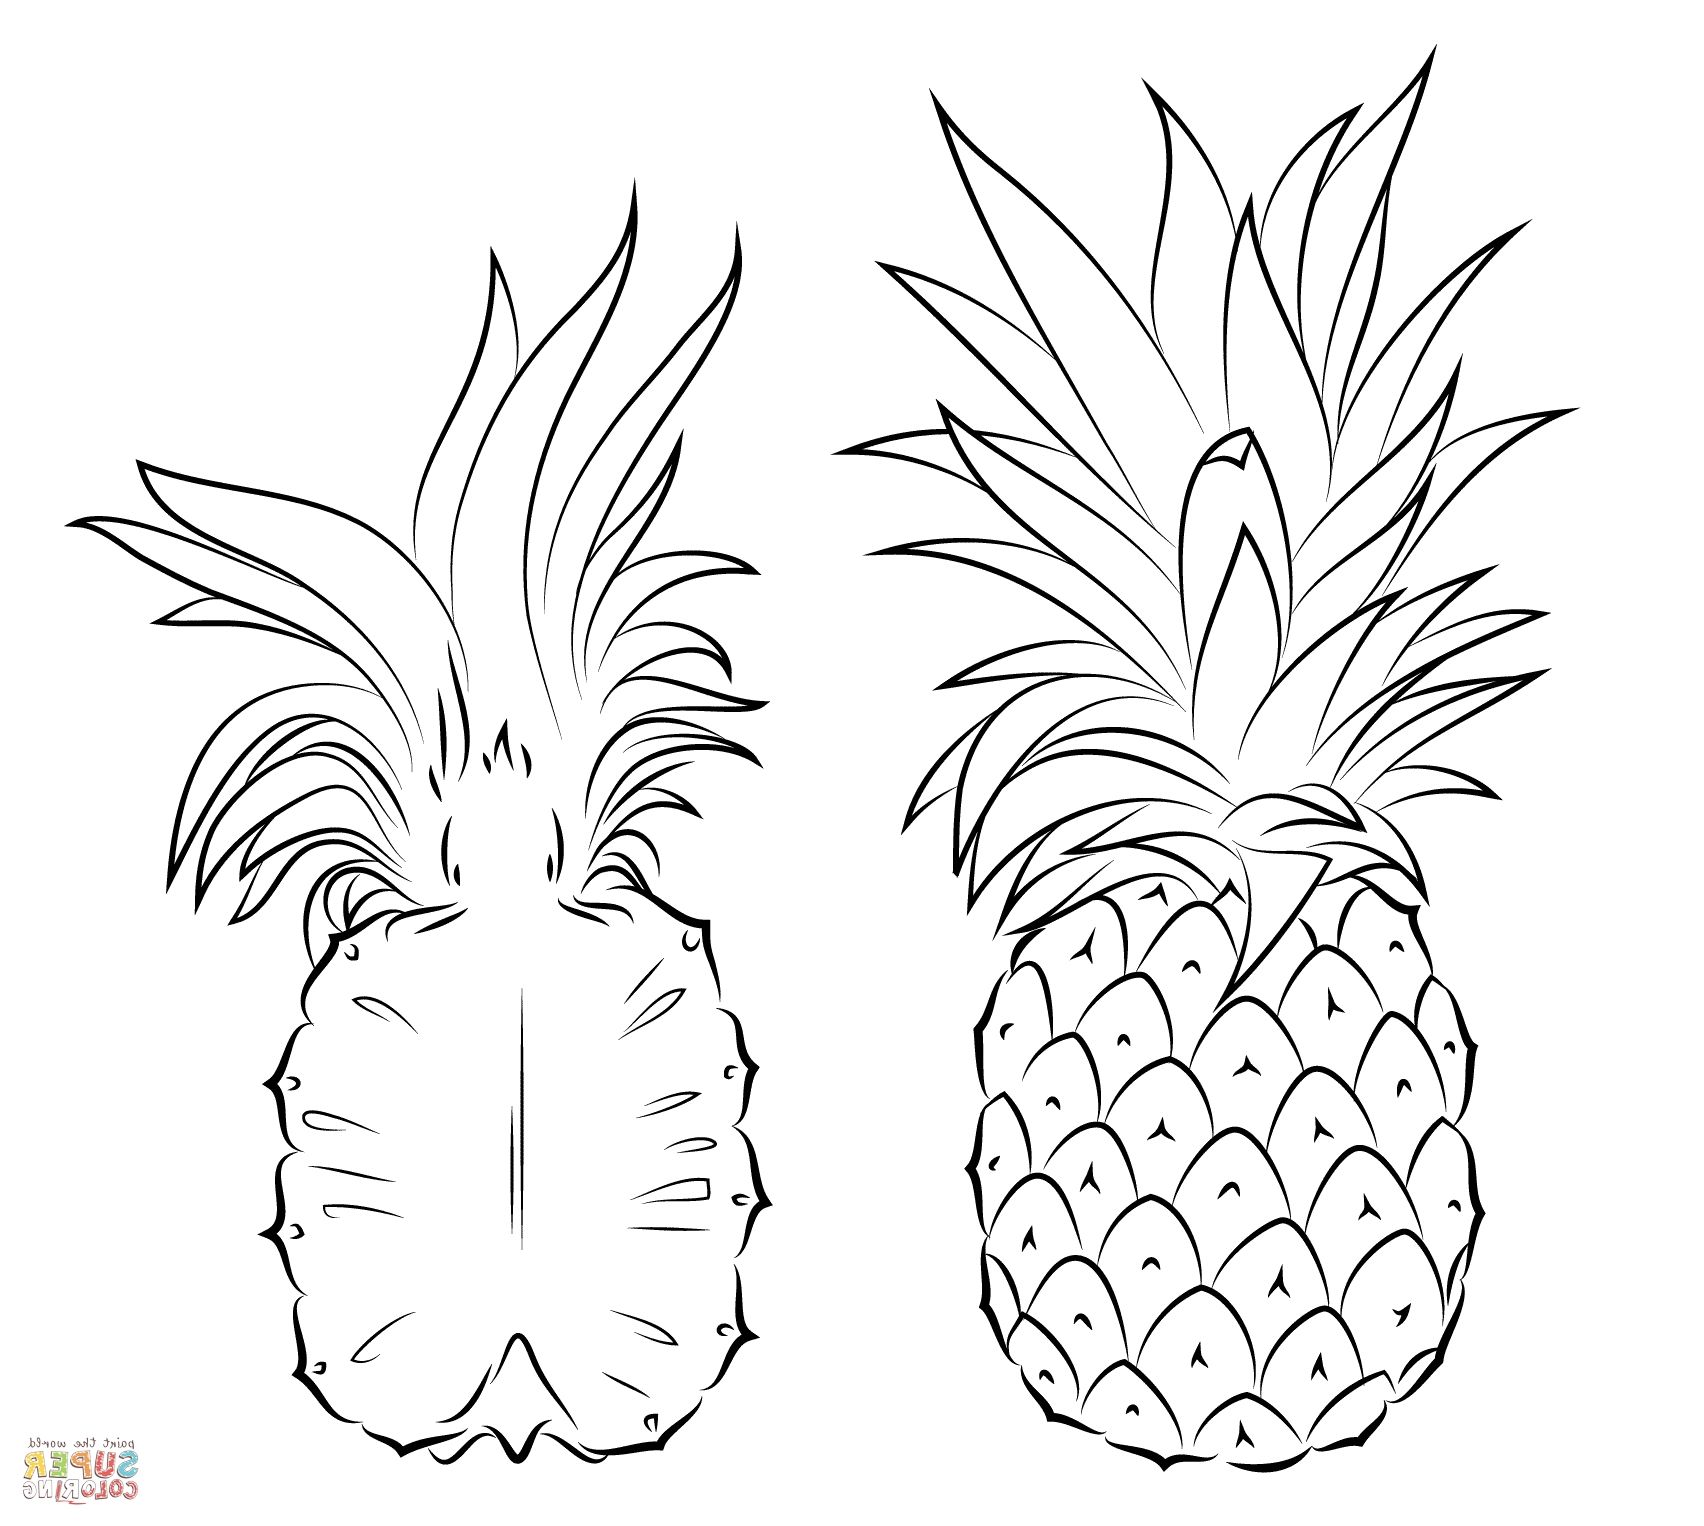 cute pineapple coloring page pineapple clipart winter cute pineapple coloring pages cute coloring page pineapple